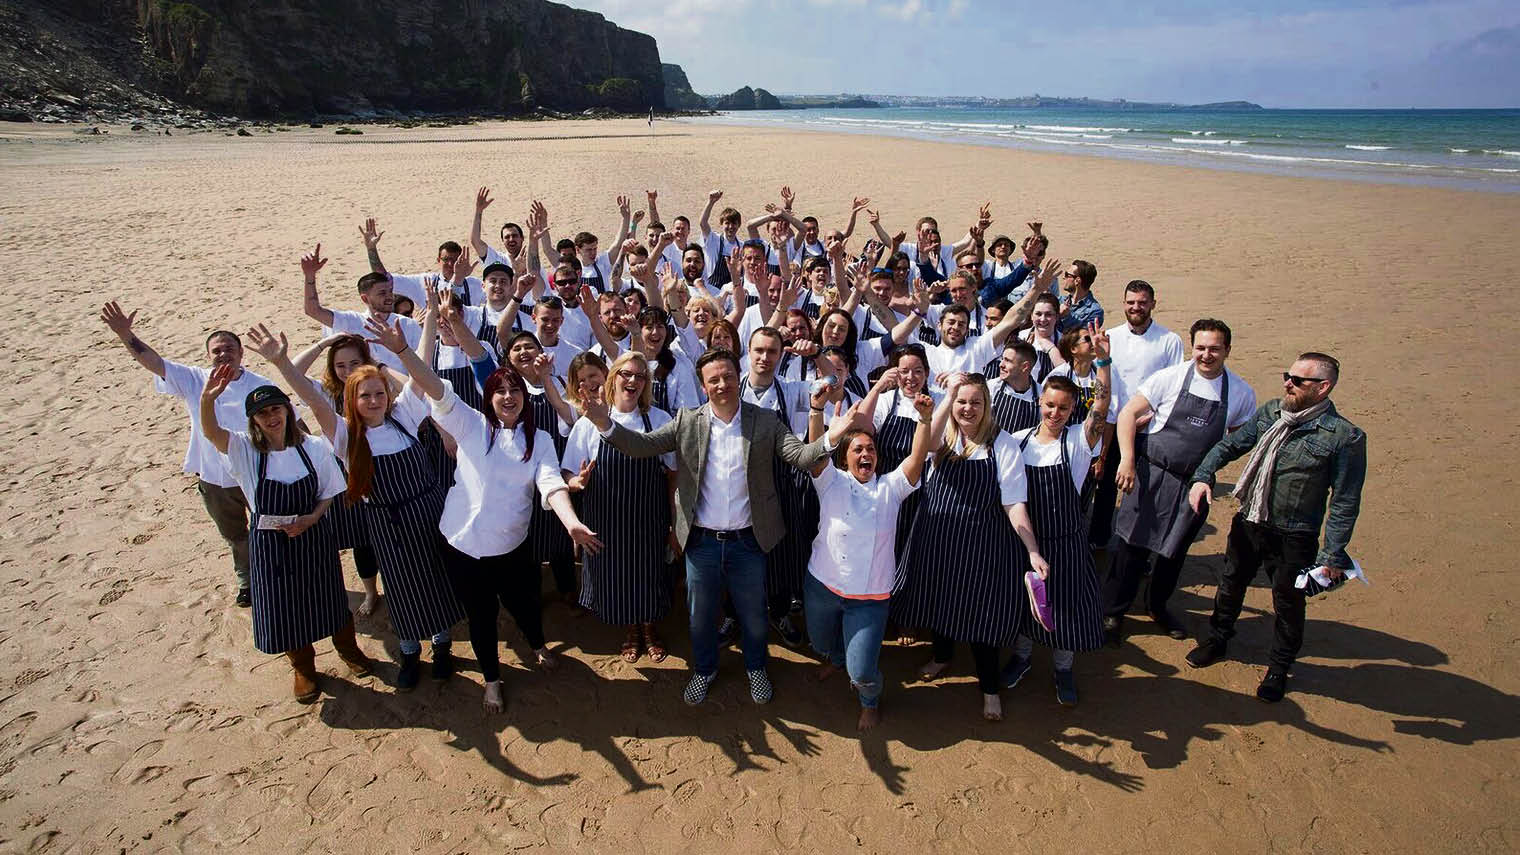 Young British workers could benefit from a fall in overseas competition: Jamie Oliver's Cornish restaurant Fifteen is a social enterprise eatery devoted to training apprentices